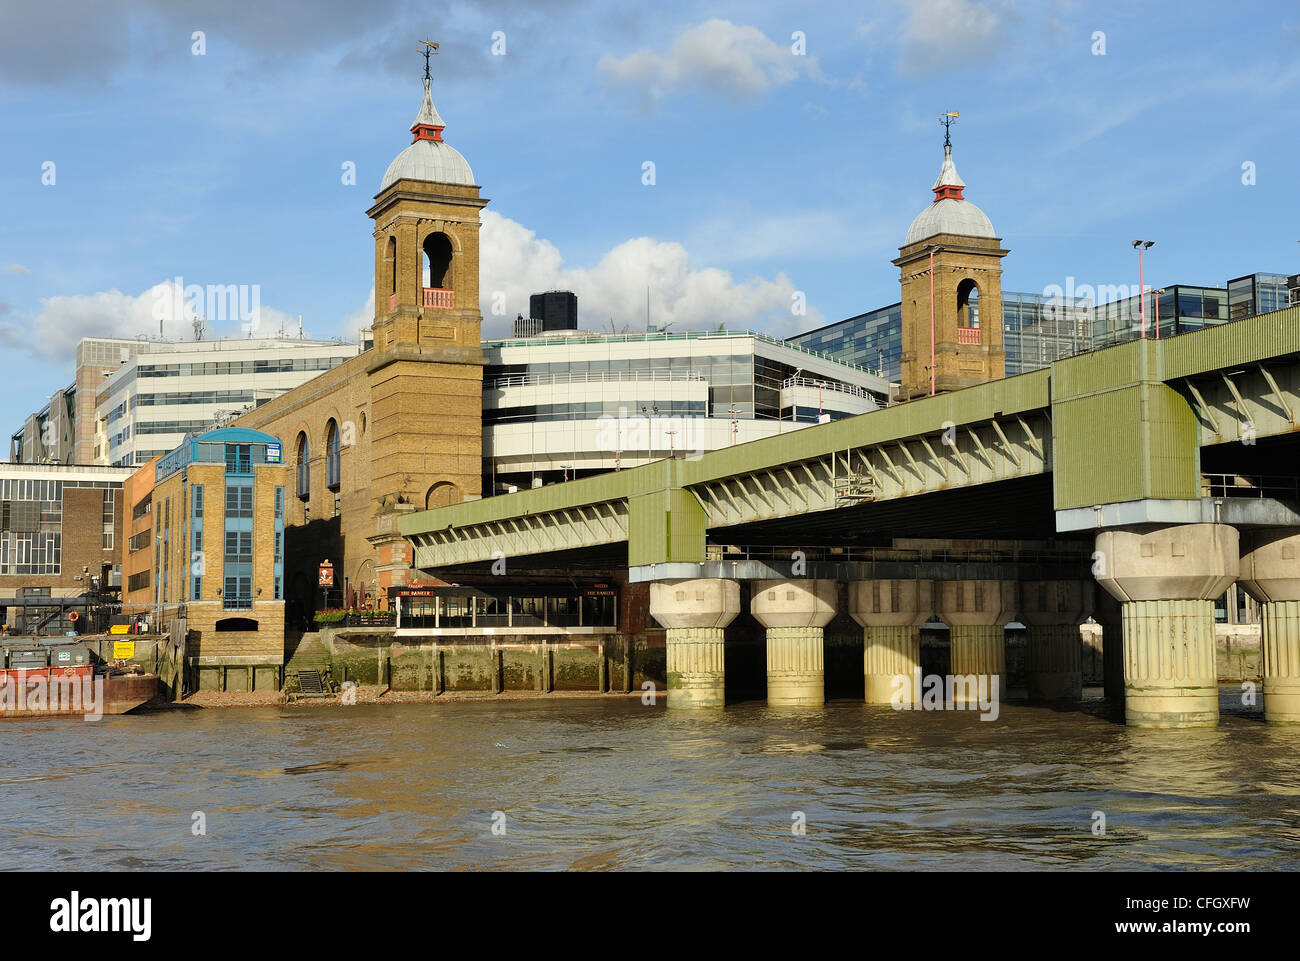 Cannon Street Station River Thames London England UK - Stock Image